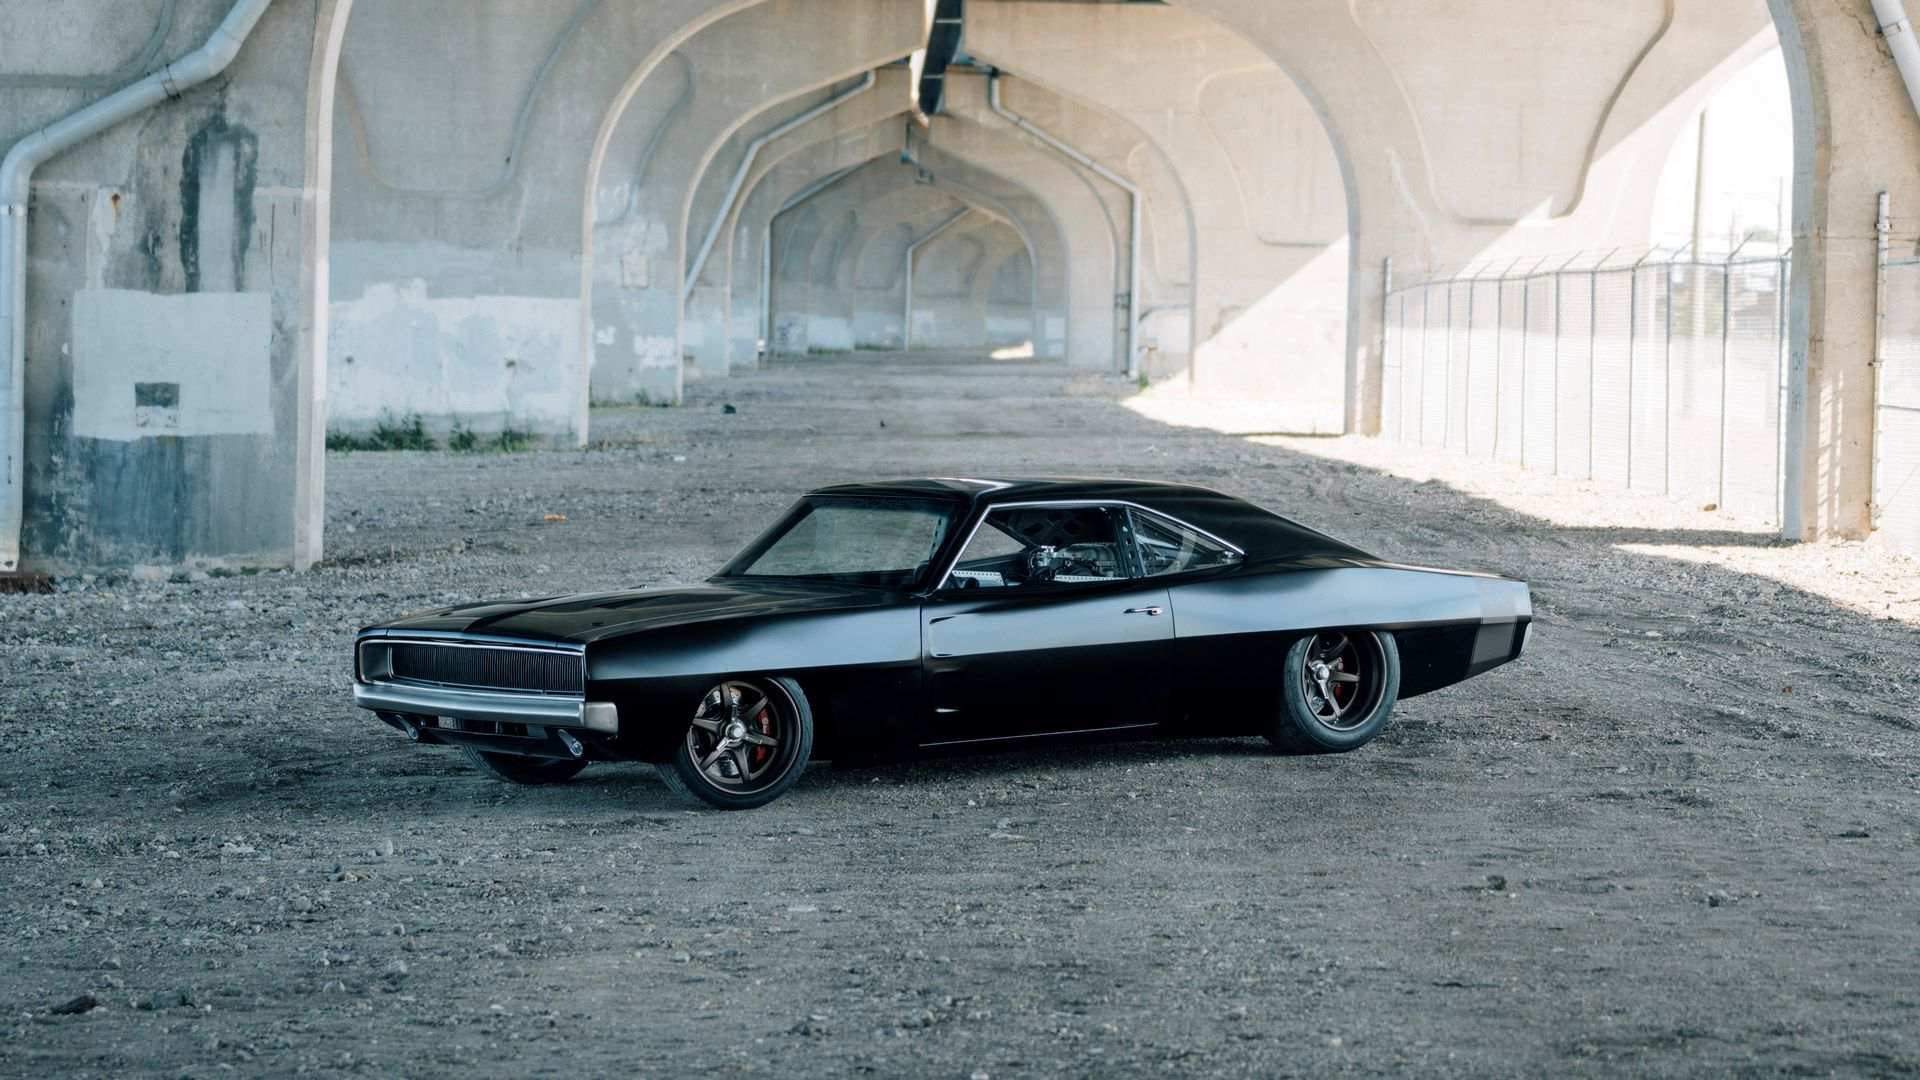 SpeedKore-Dodge-Charger-Hellacious-1968-4